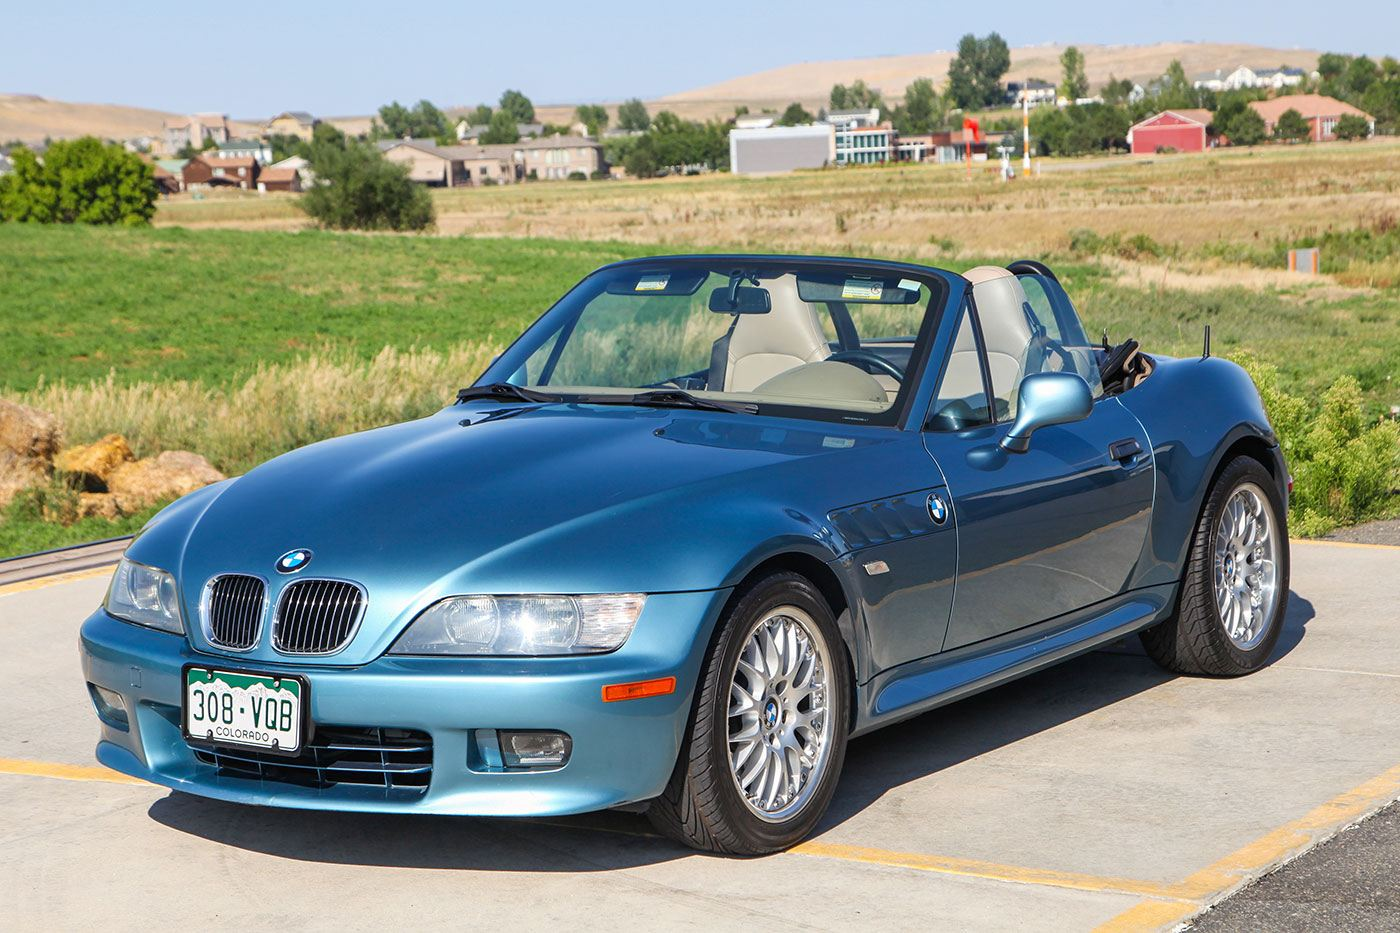 2001 BMW Z3 Roadster exterior photo